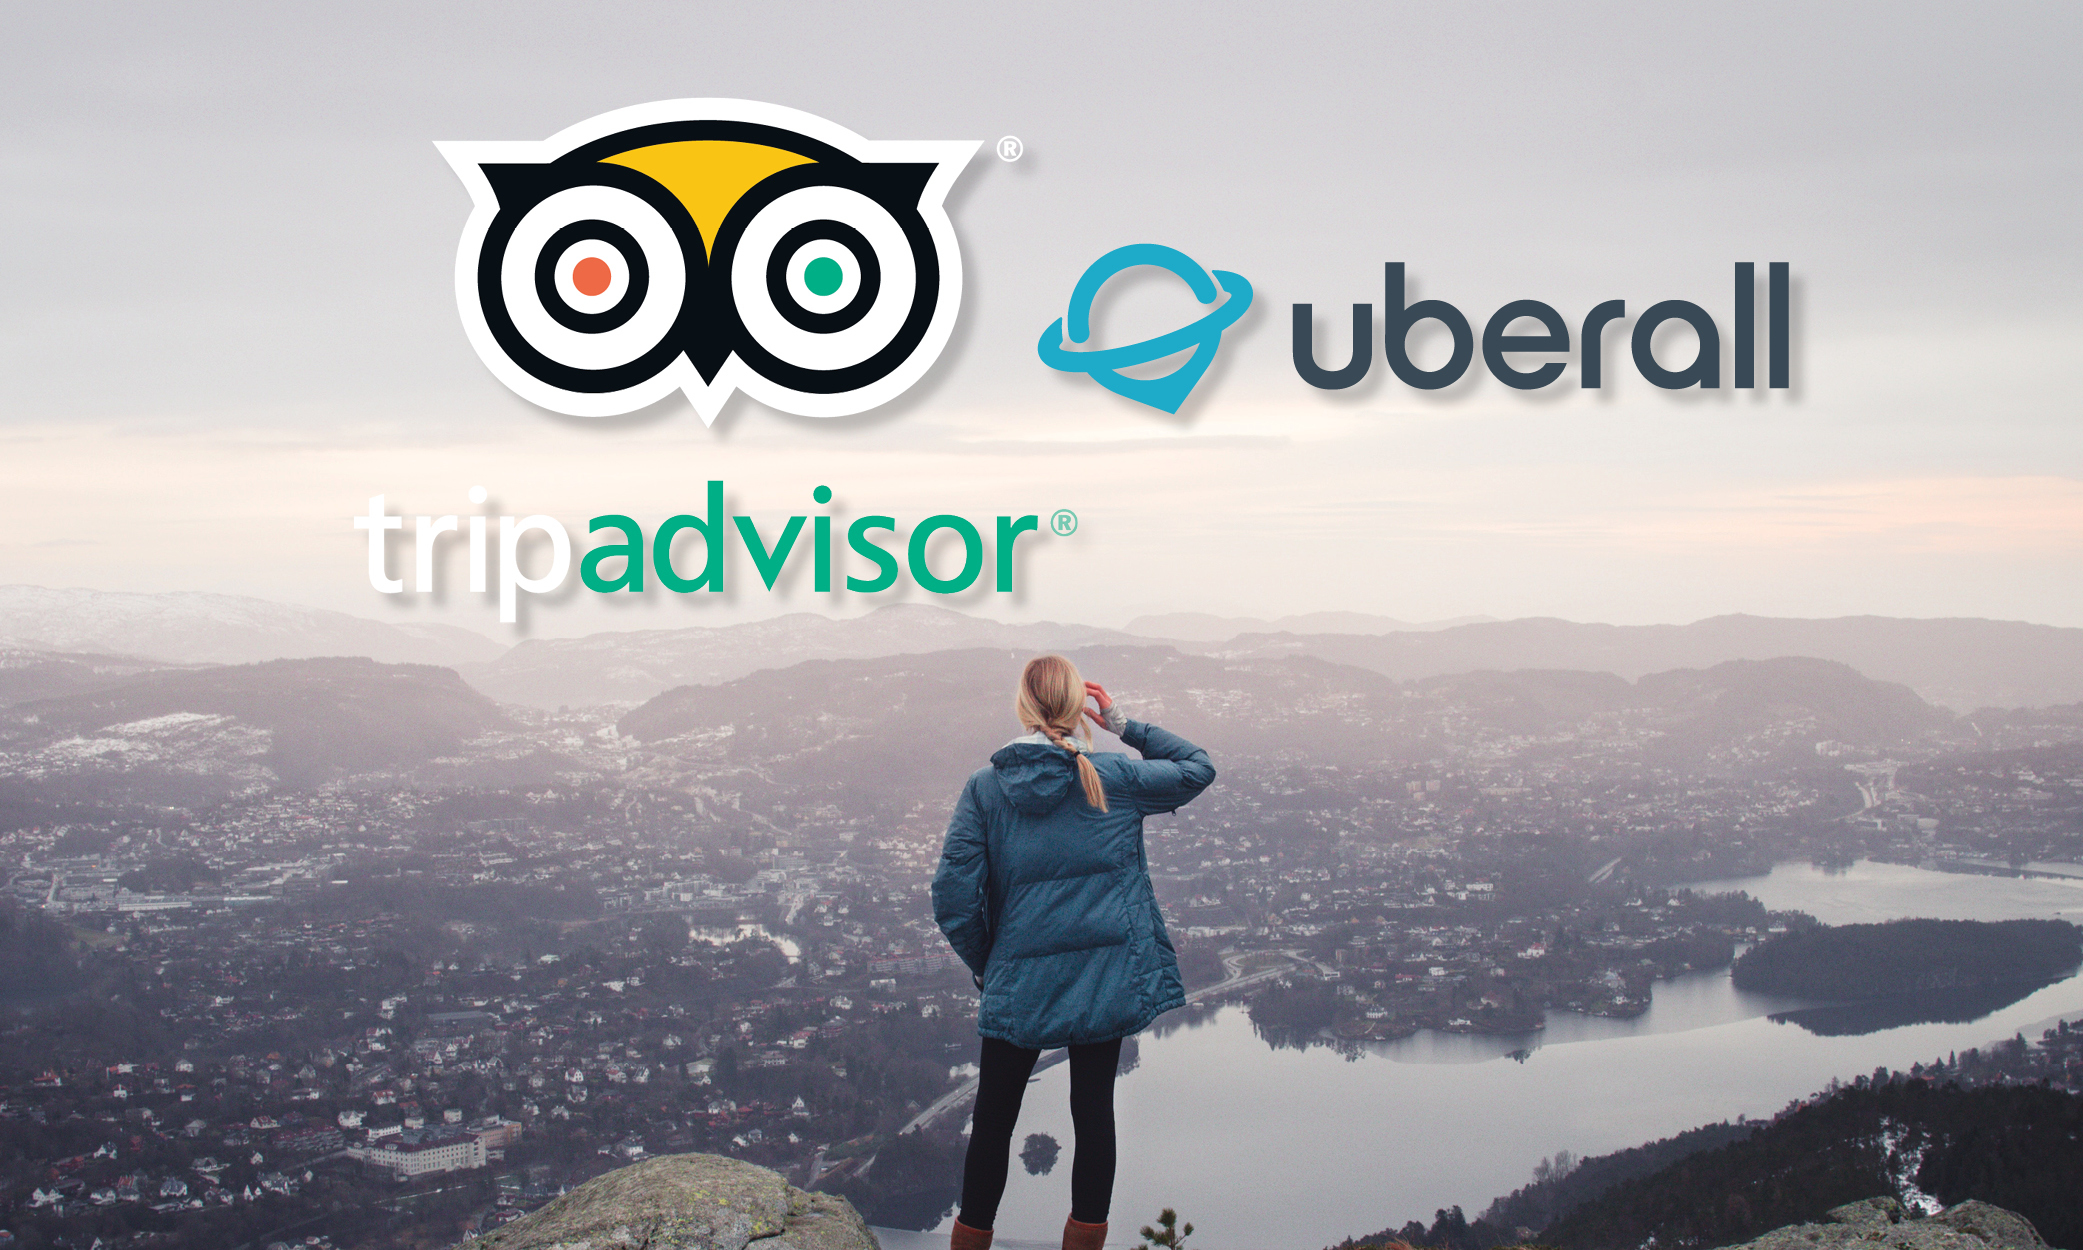 Uberall Collaborates with TripAdvisor to Help Businesses & Hospitality Brands Better Manage their Digital Footprint